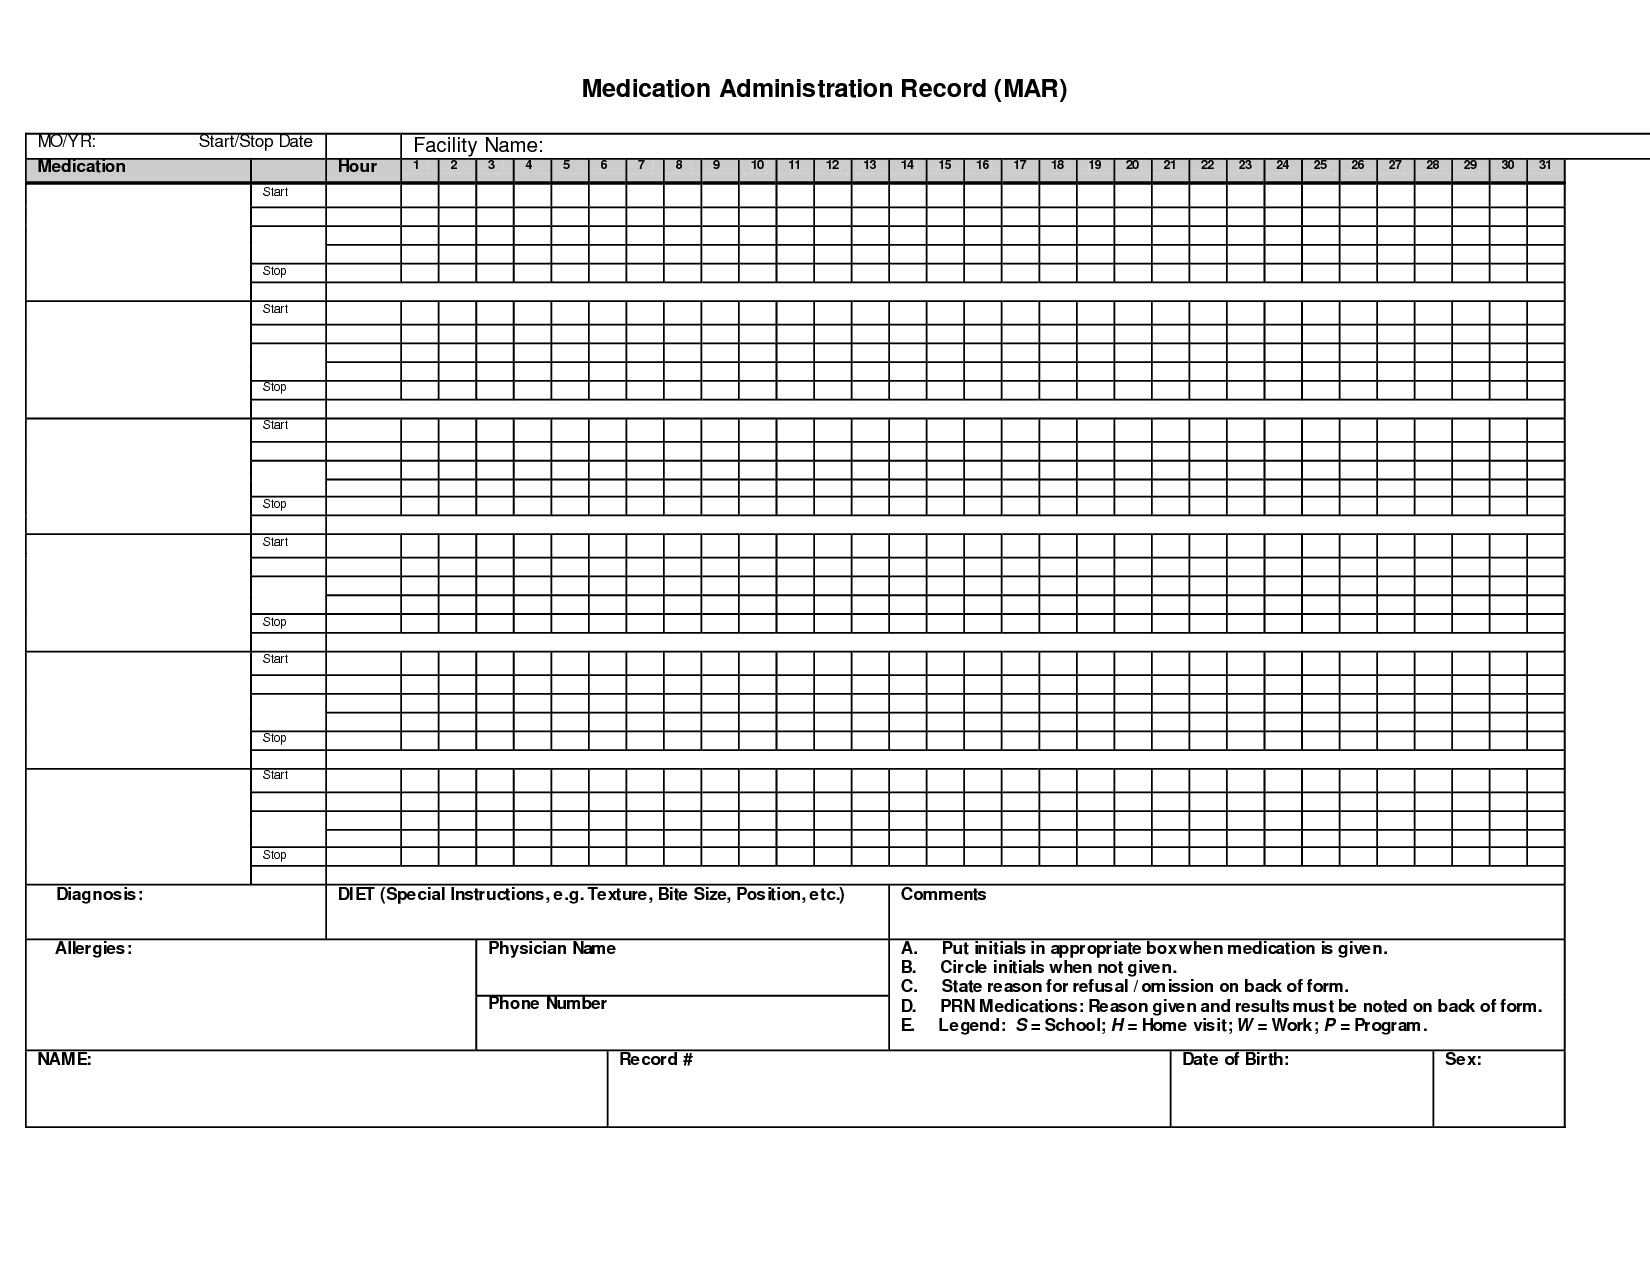 Medication Spreadsheet Organizer Spreadsheet Downloa Free